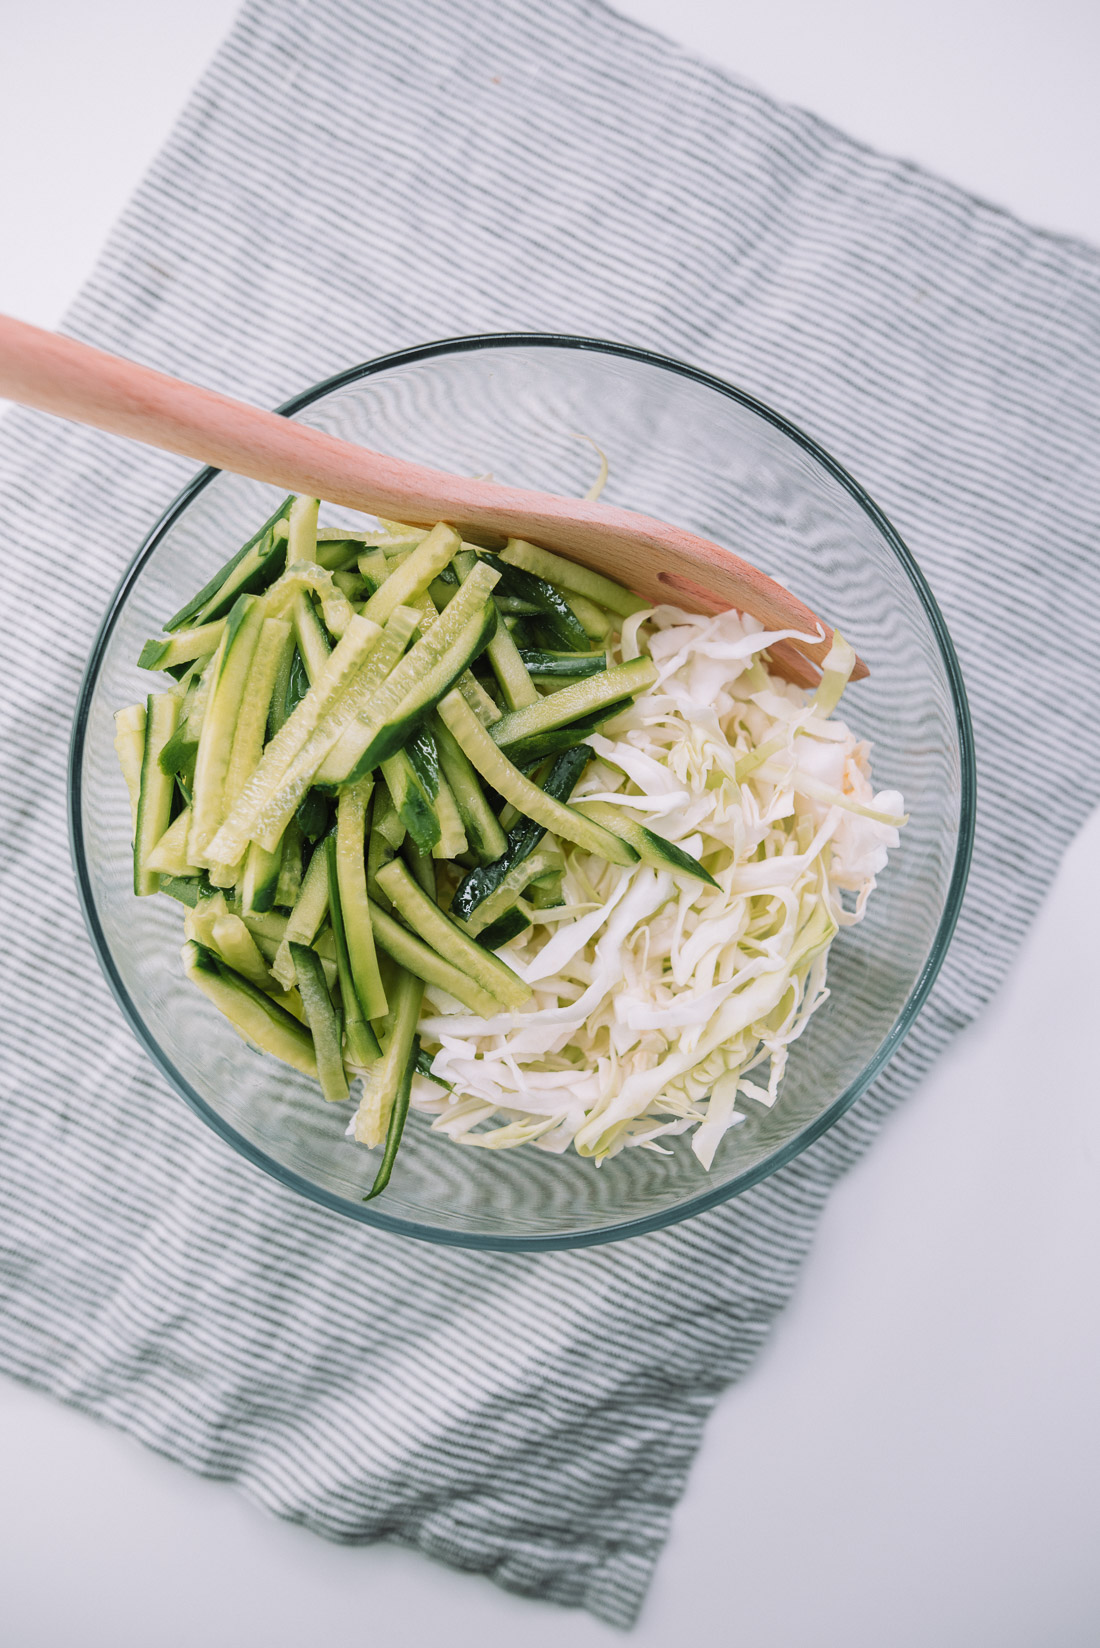 10 ingredient Cucumber Cabbage Slaw is a quick and healthy side dish that pairs with sandwiches, hotdog. Recipe from Mash and Spread.